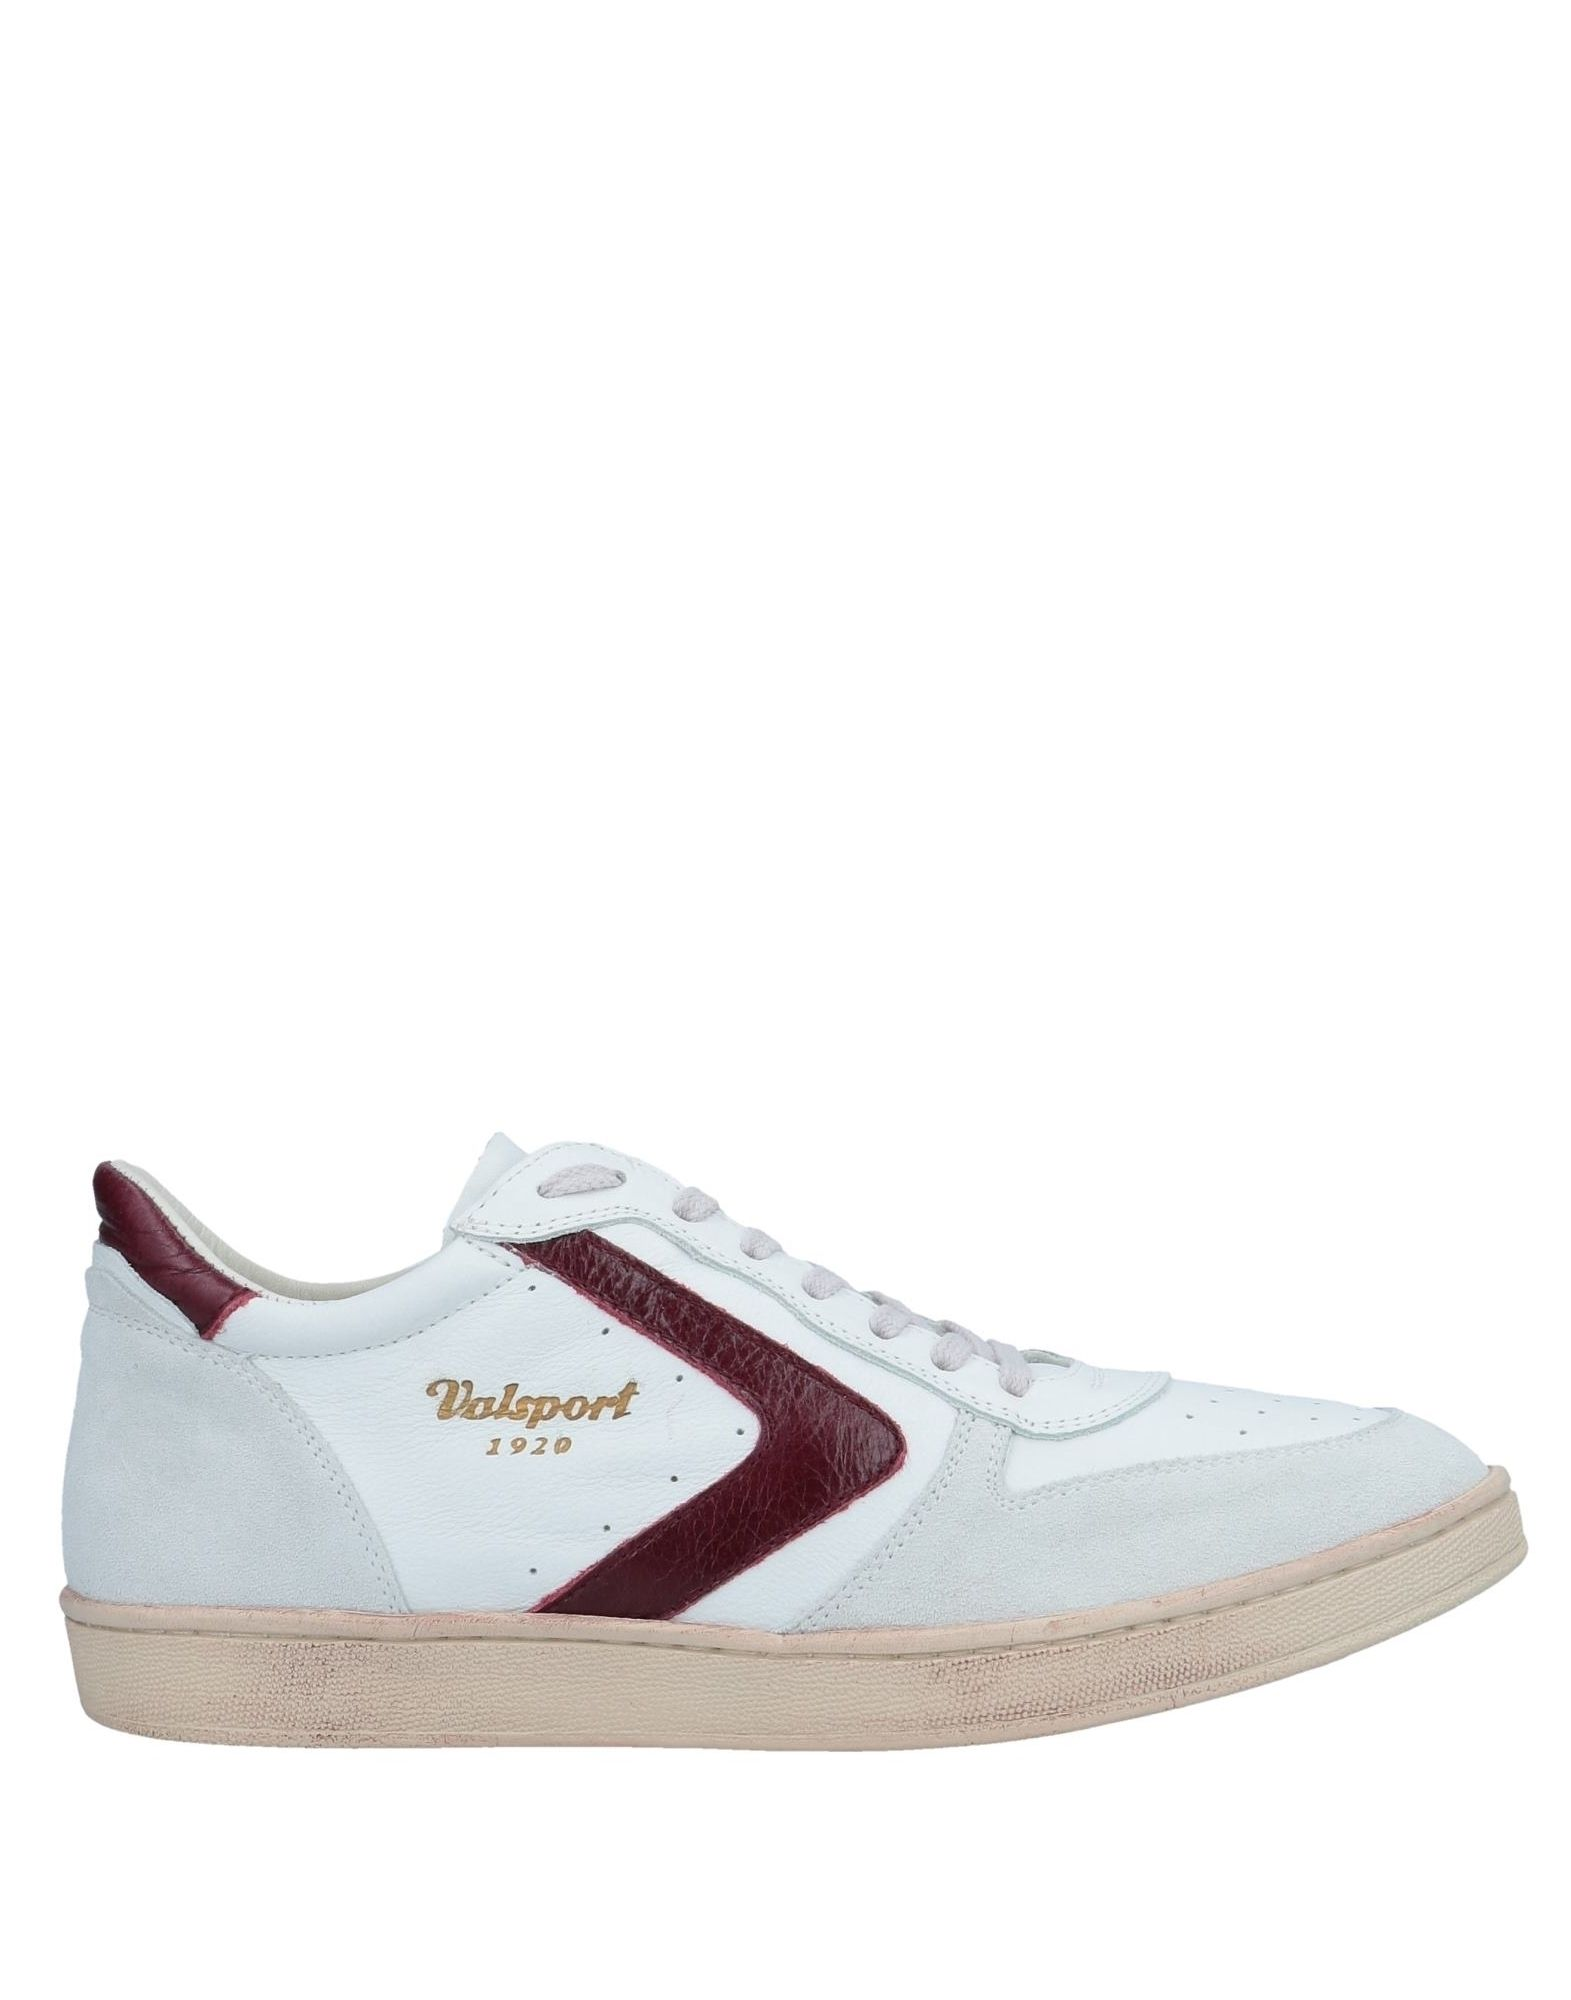 Valsport Sneakers - Men Valsport Australia Sneakers online on  Australia Valsport - 11549853IS 0d3117